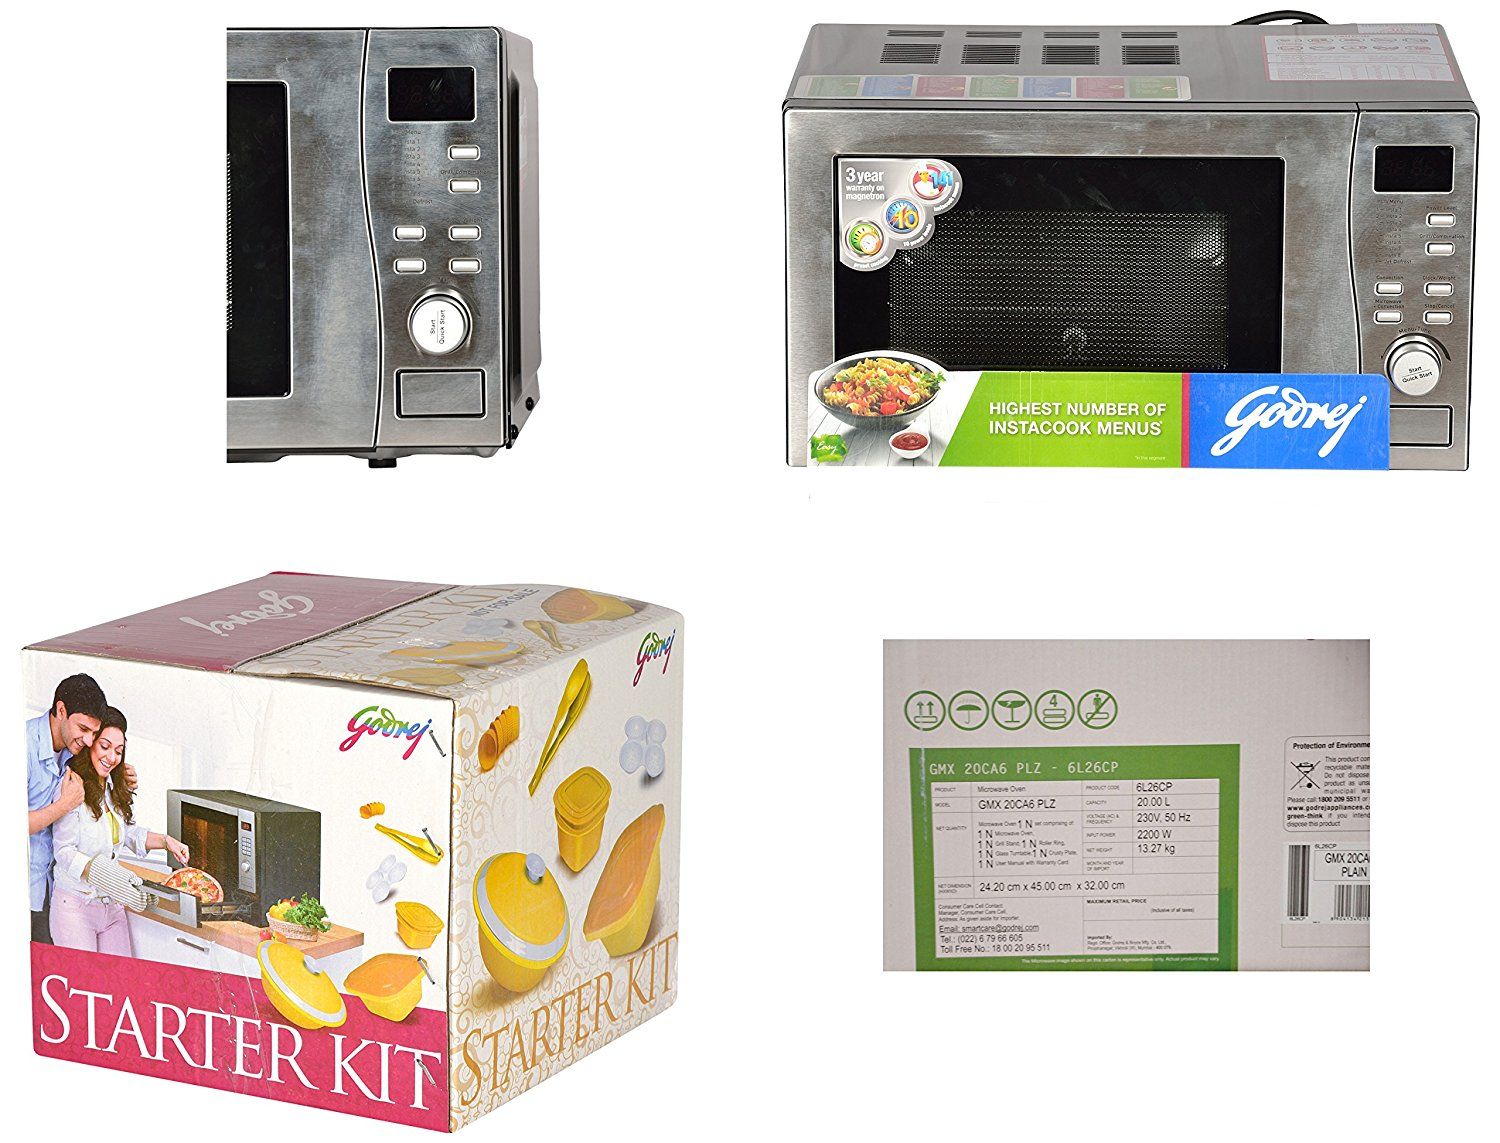 Godrej microwave 20L clear display